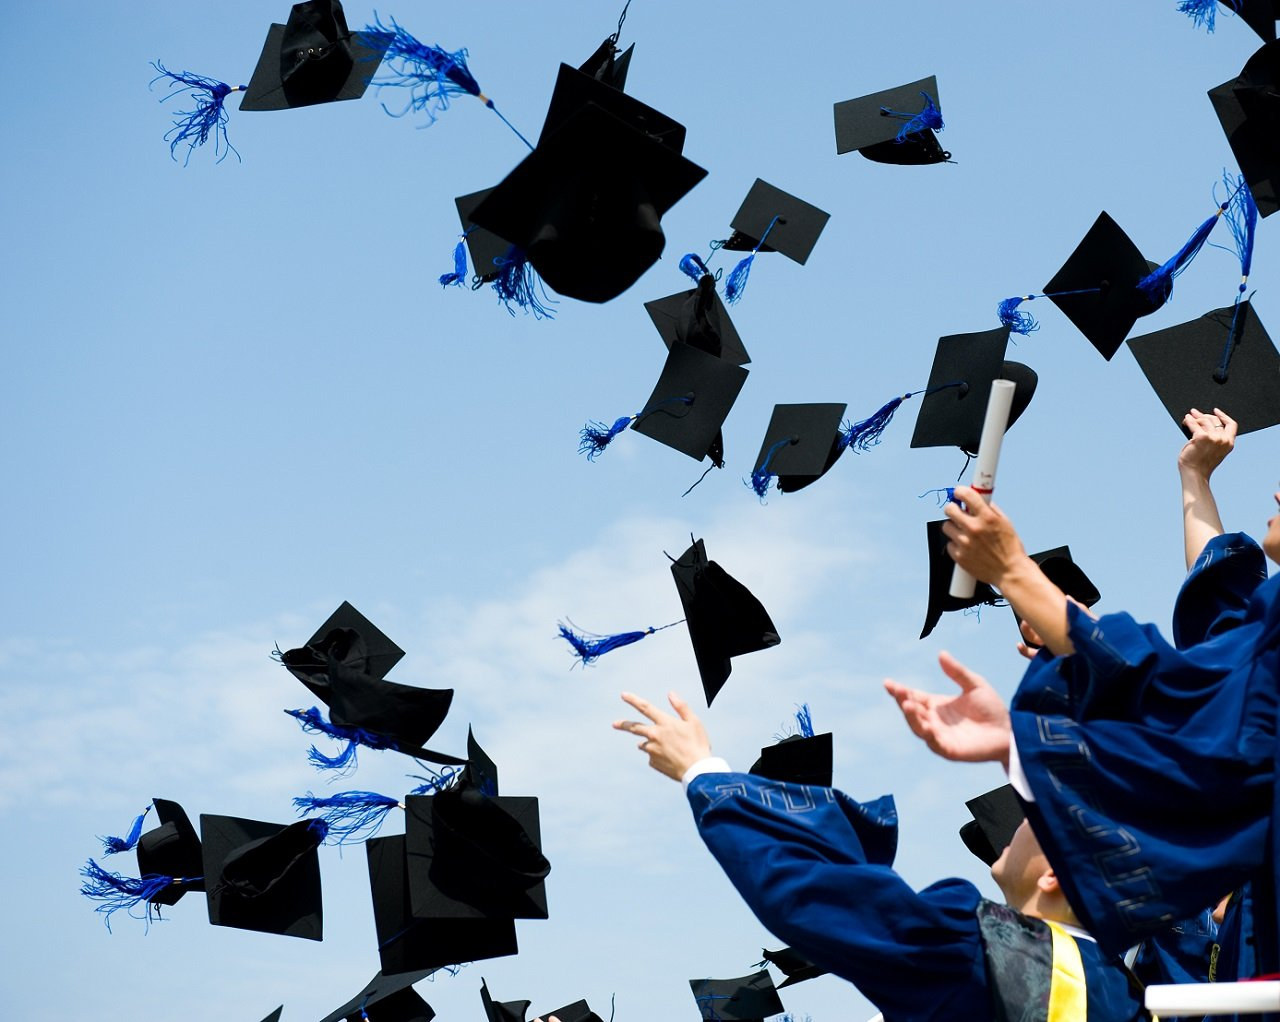 Home - image high_quality_grad on http://xsis.academy